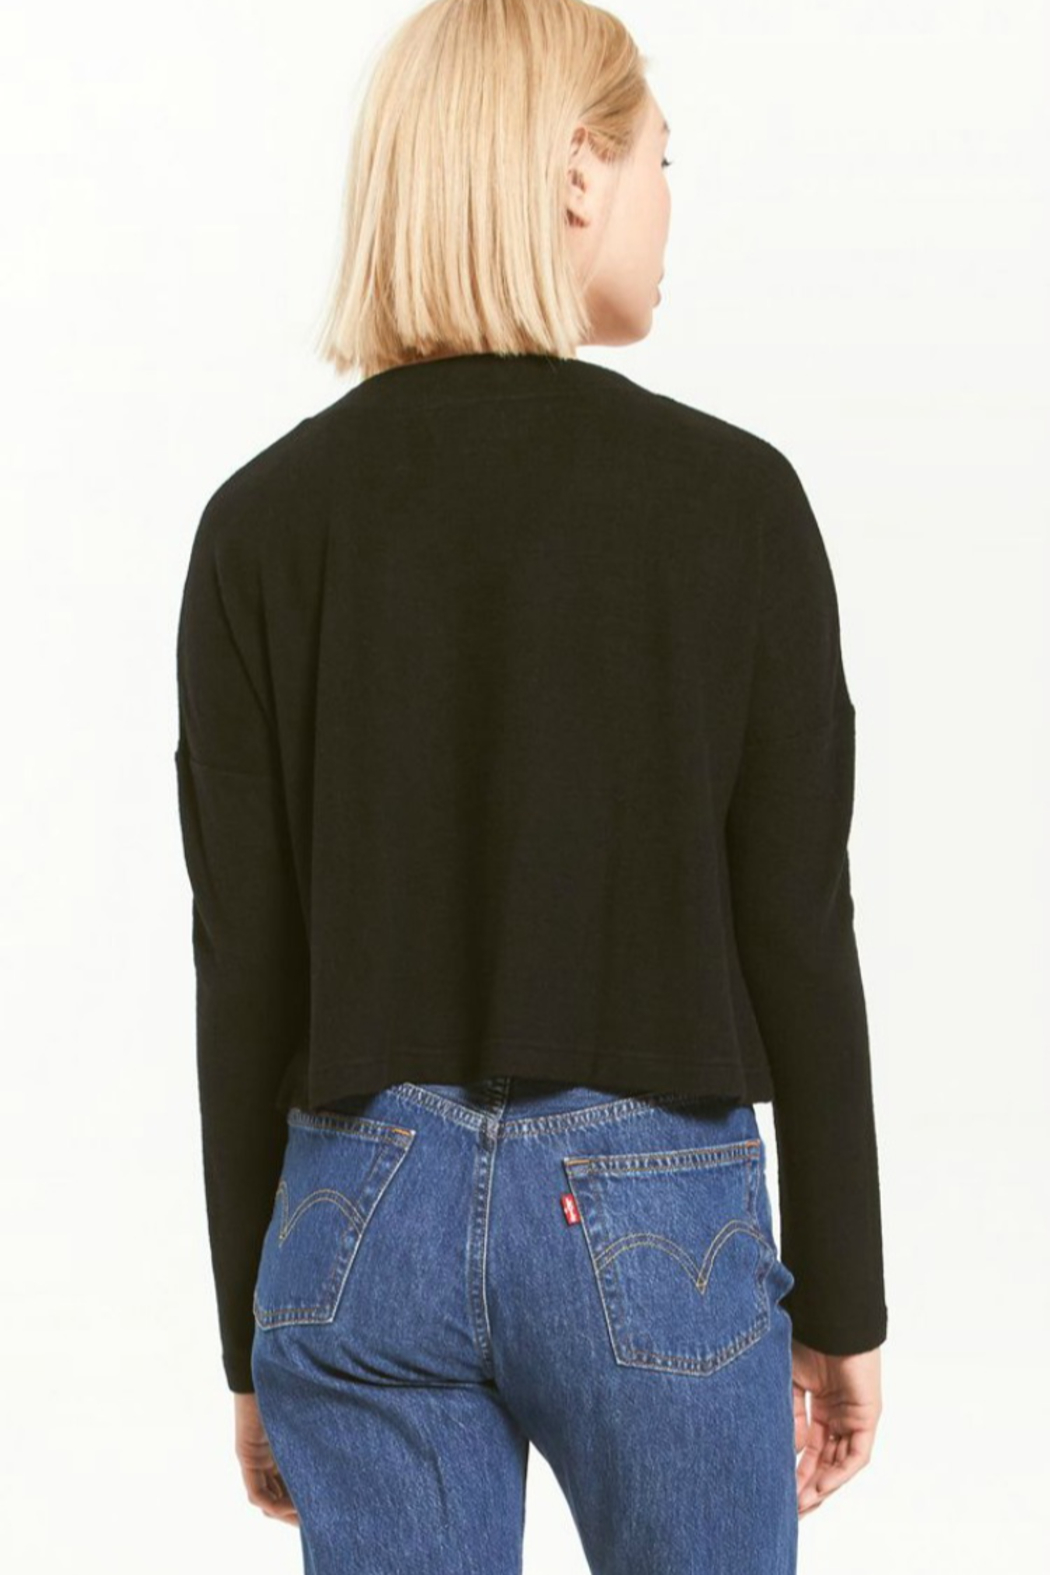 z supply Cher Slub Sweater - Side Cropped Image